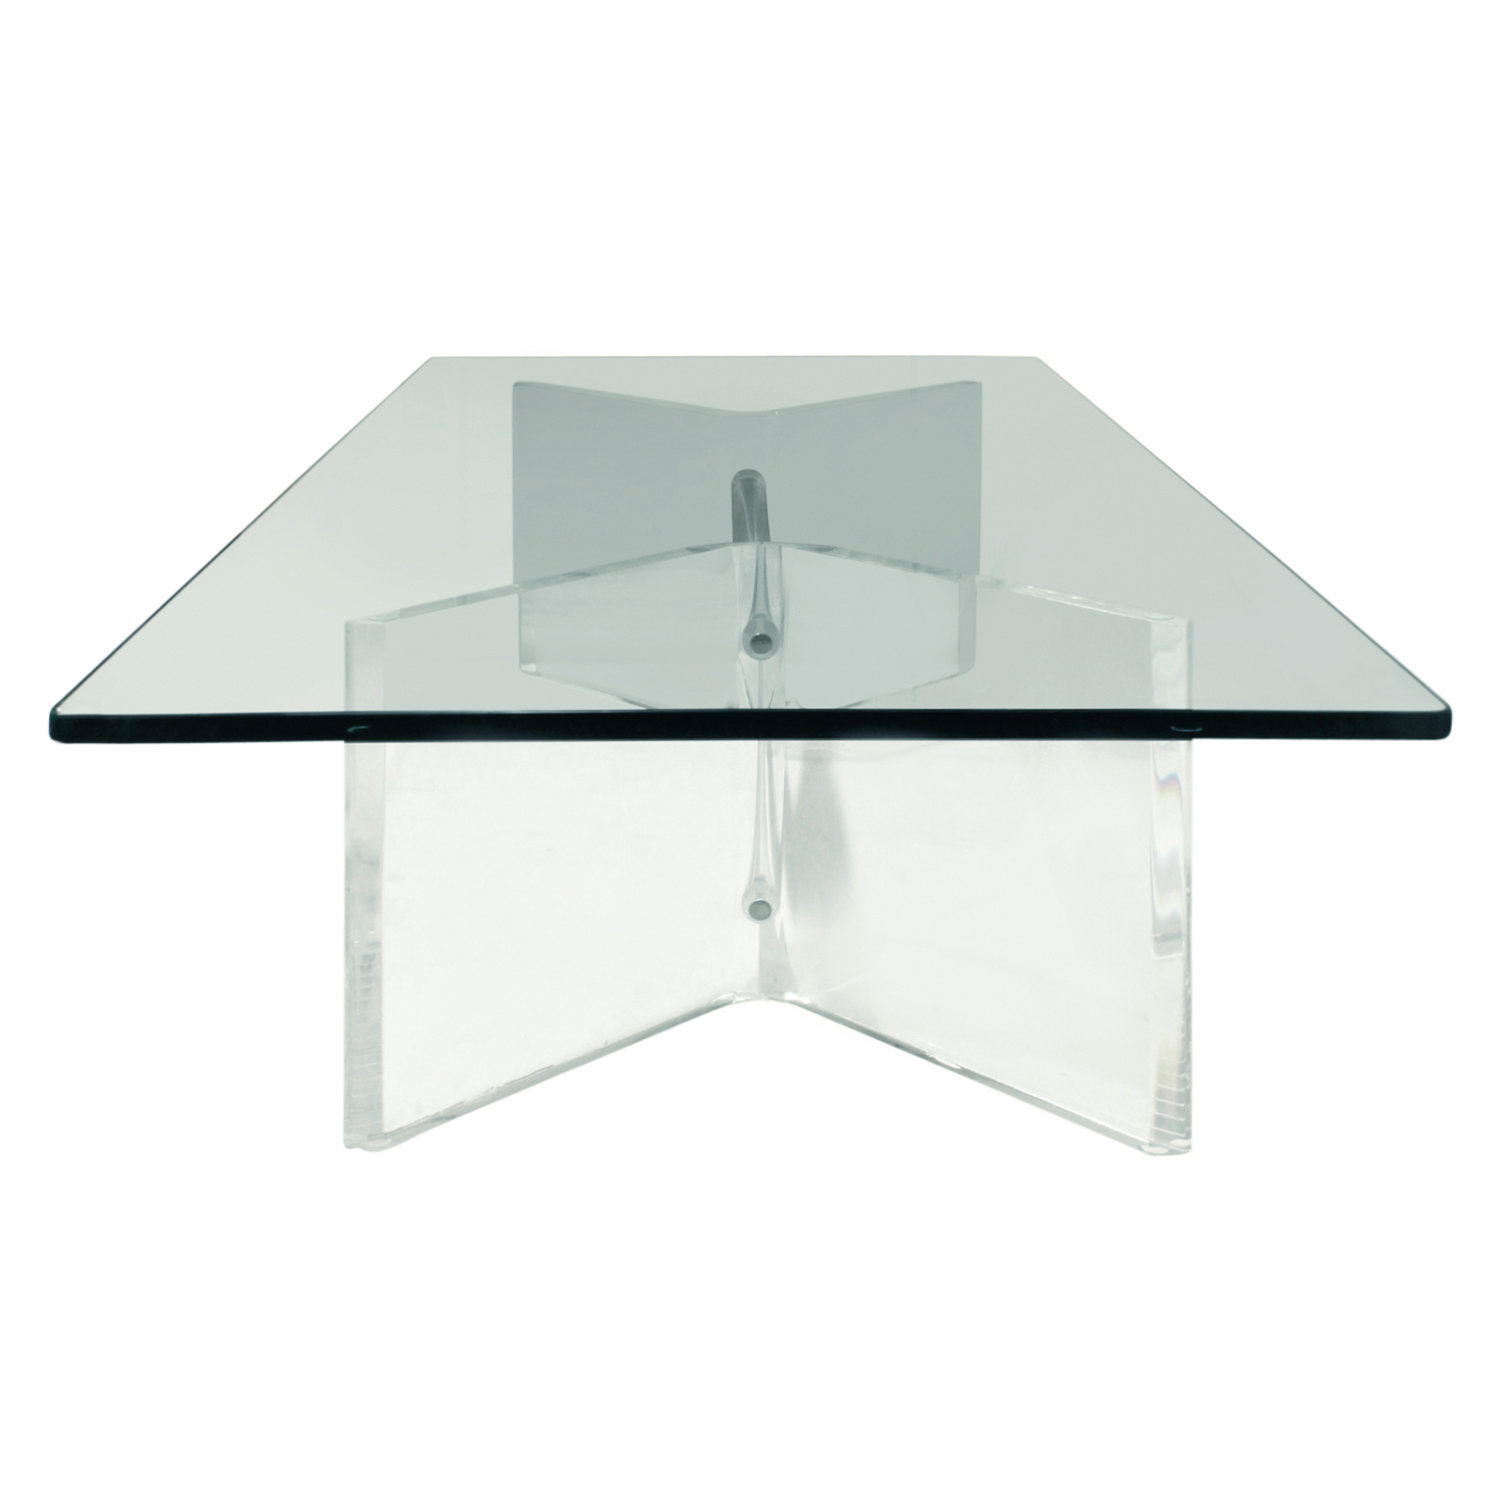 70s 65 rect lucite rod stretchers coffeetable417 sid1.jpg